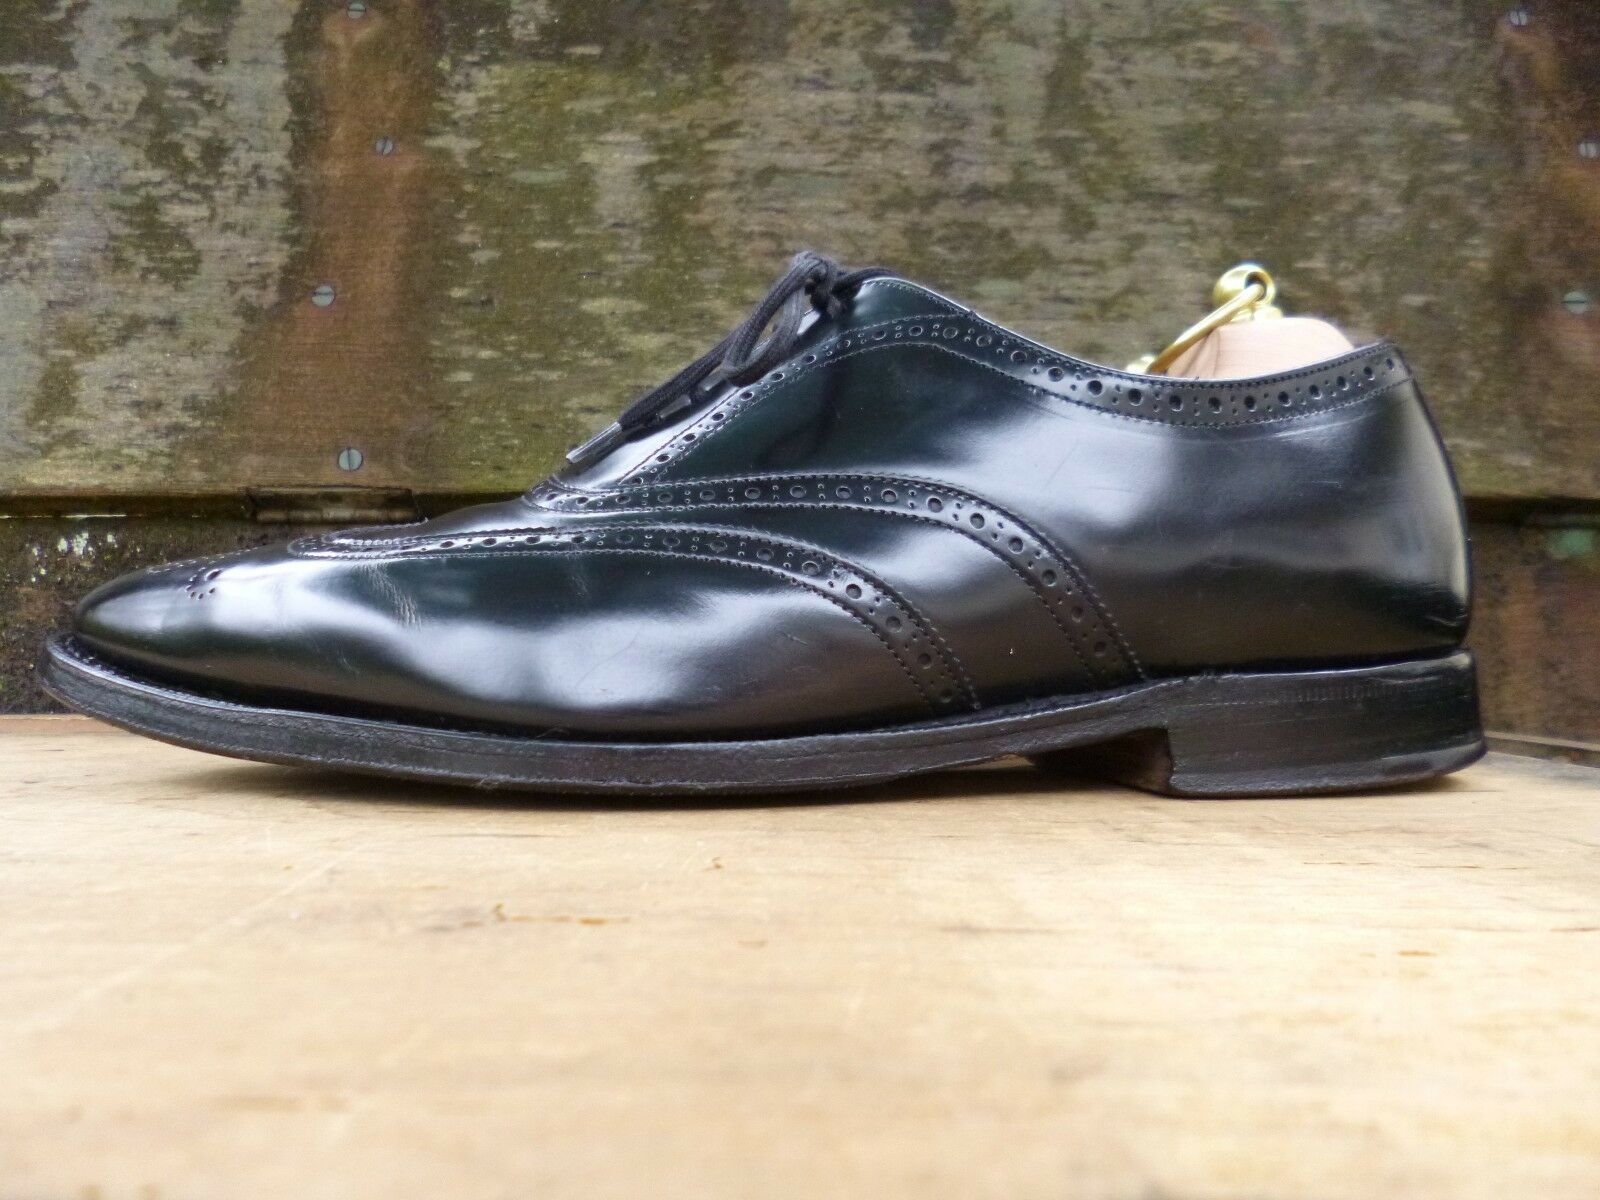 CHURCH OXFORD BROGUES BROGUES OXFORD - schwarz – UK 6.5 – NEW YORK - EXCELLENT CONDITION 70d12d